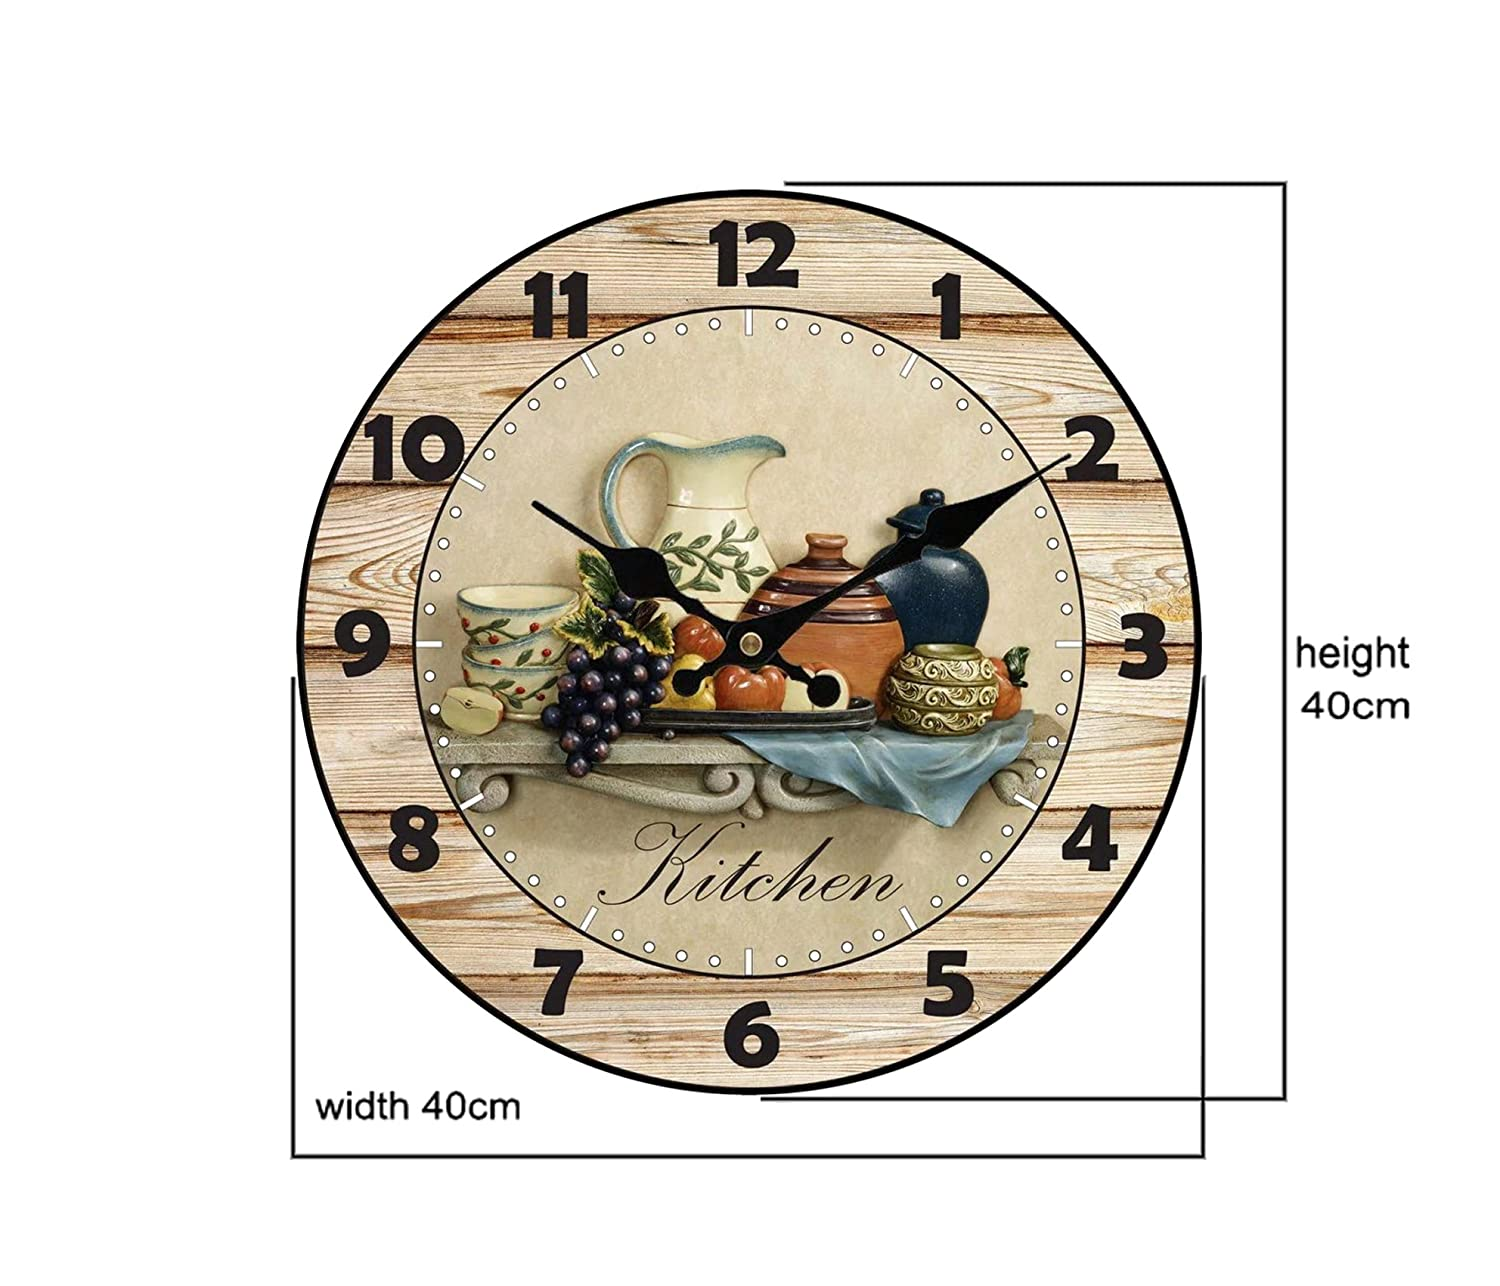 Amazon.com: Upuptop Modern Home Decor Quiet Sweep Movement Kitchen Round Wood Wall Clock Fruit Ceramics 16inch: Home & Kitchen